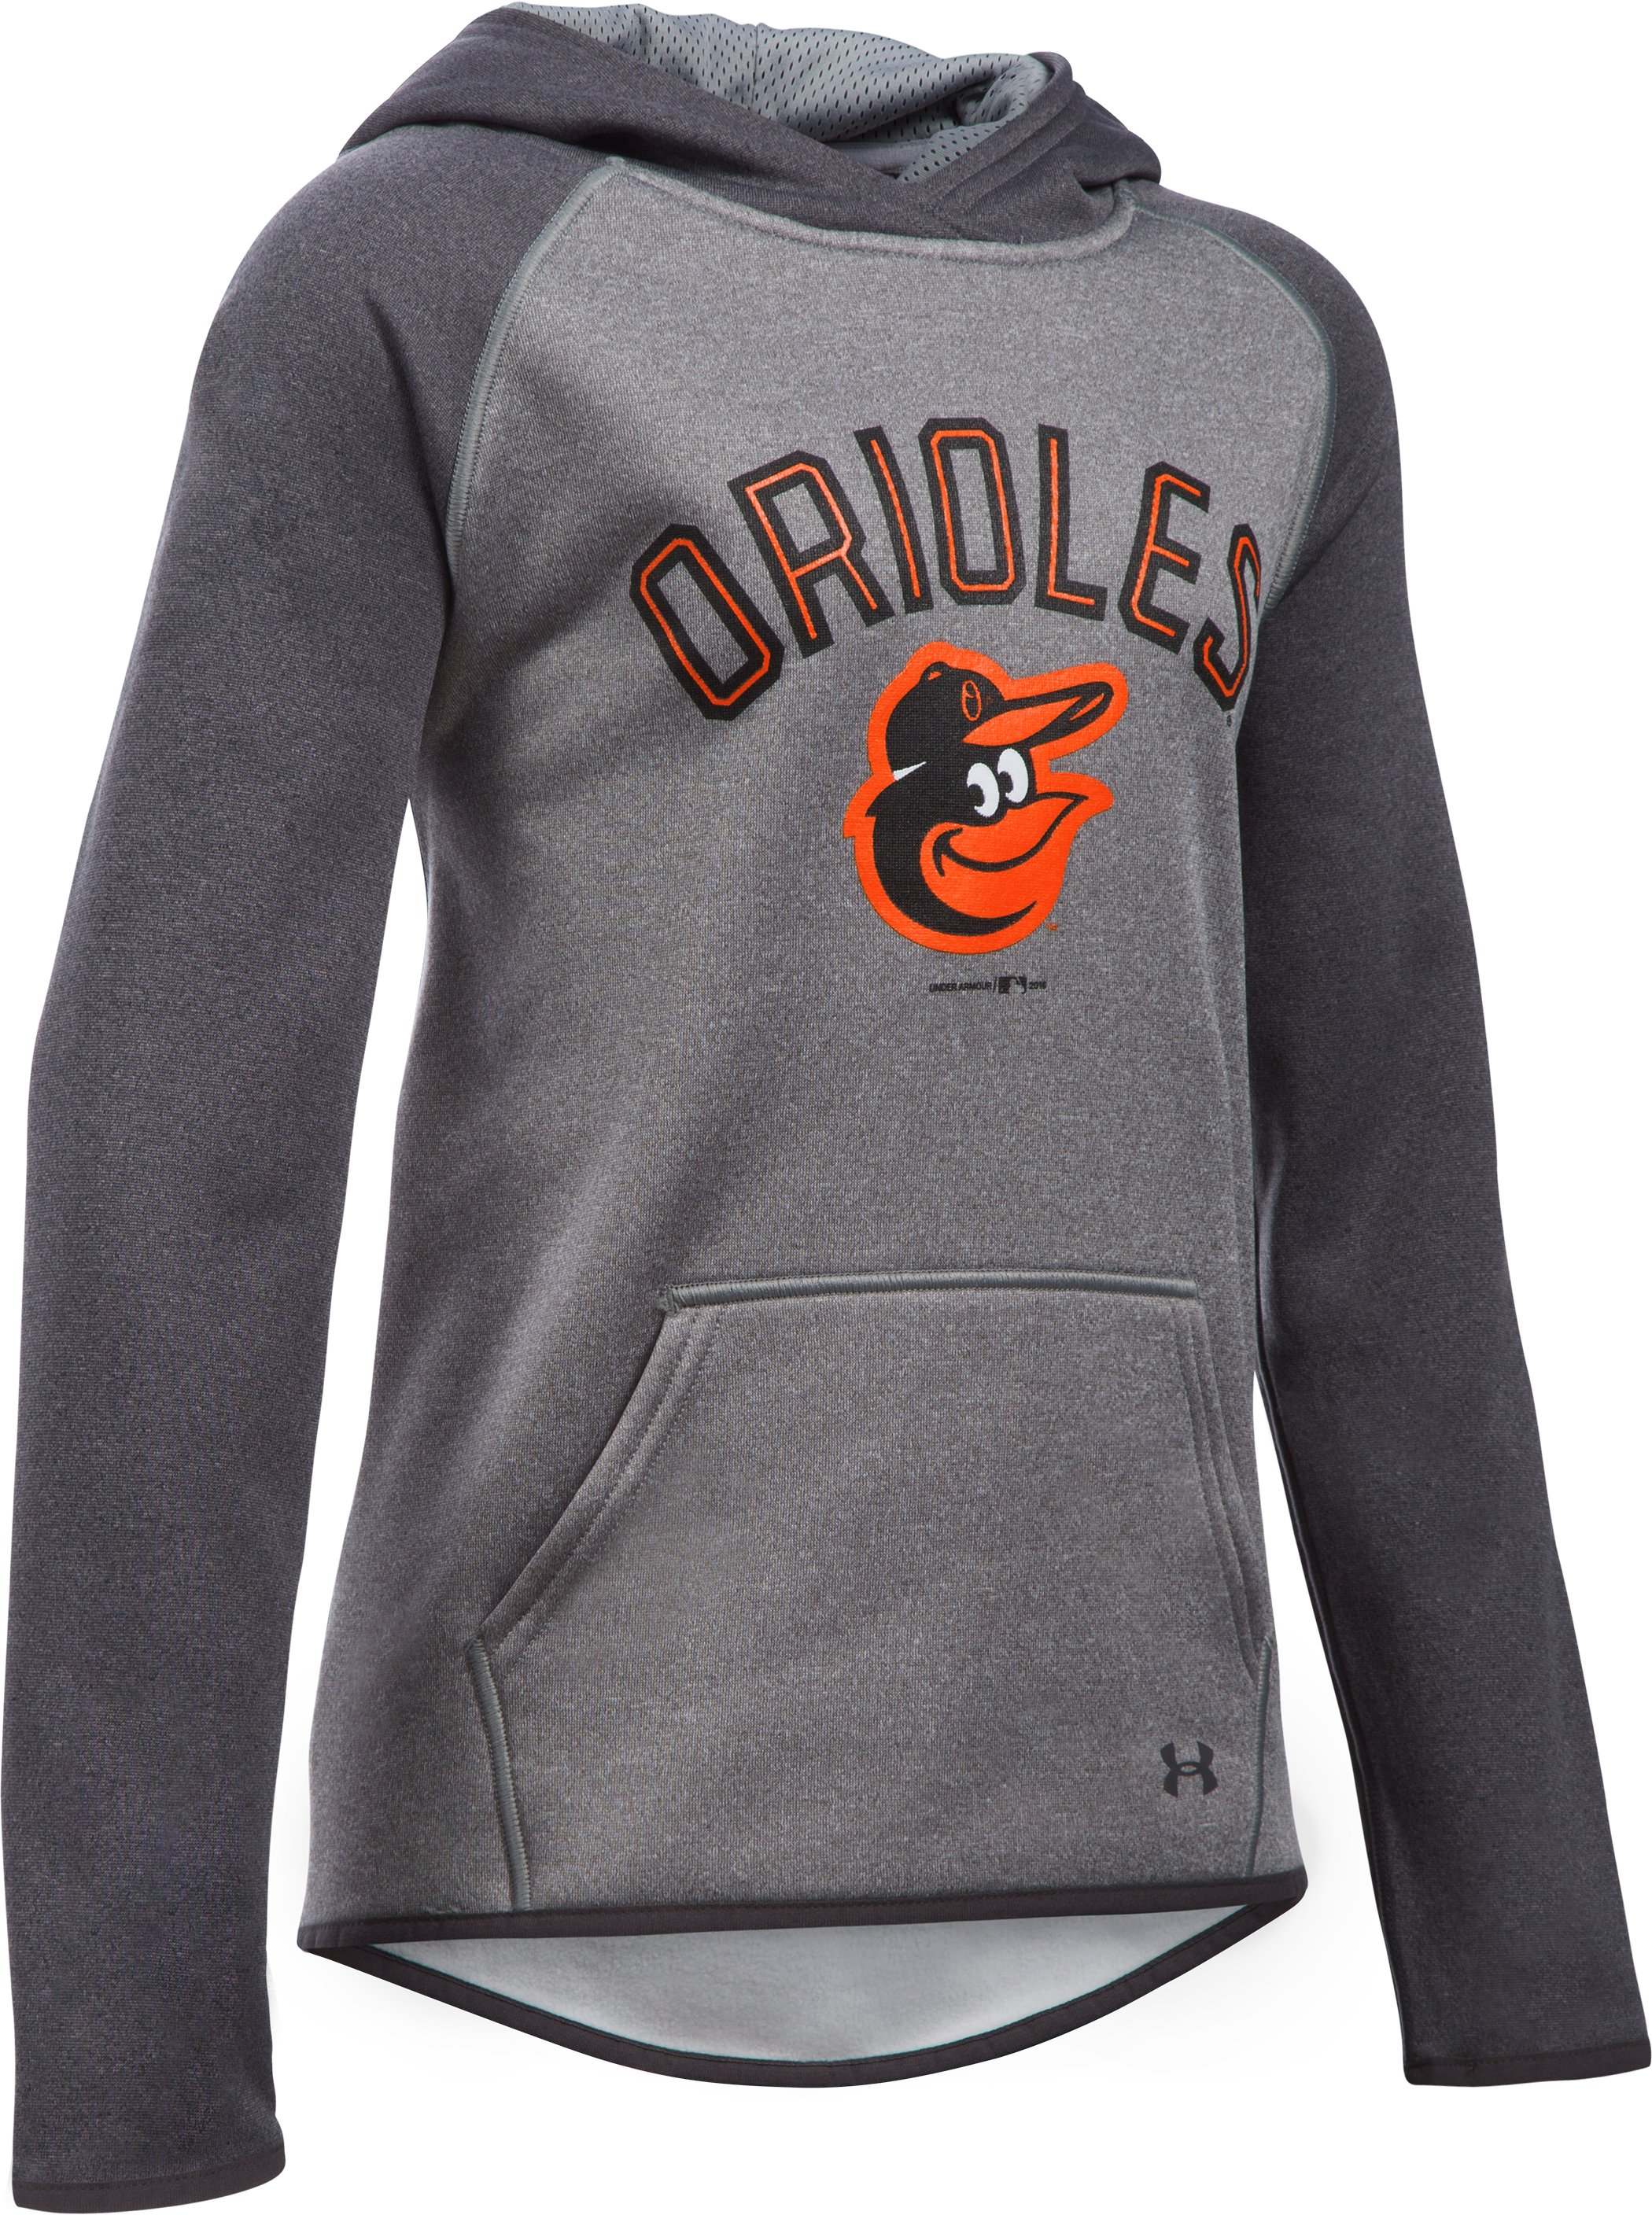 Girls' Baltimore Orioles Armour Fleece® Hoodie, Carbon Heather, undefined